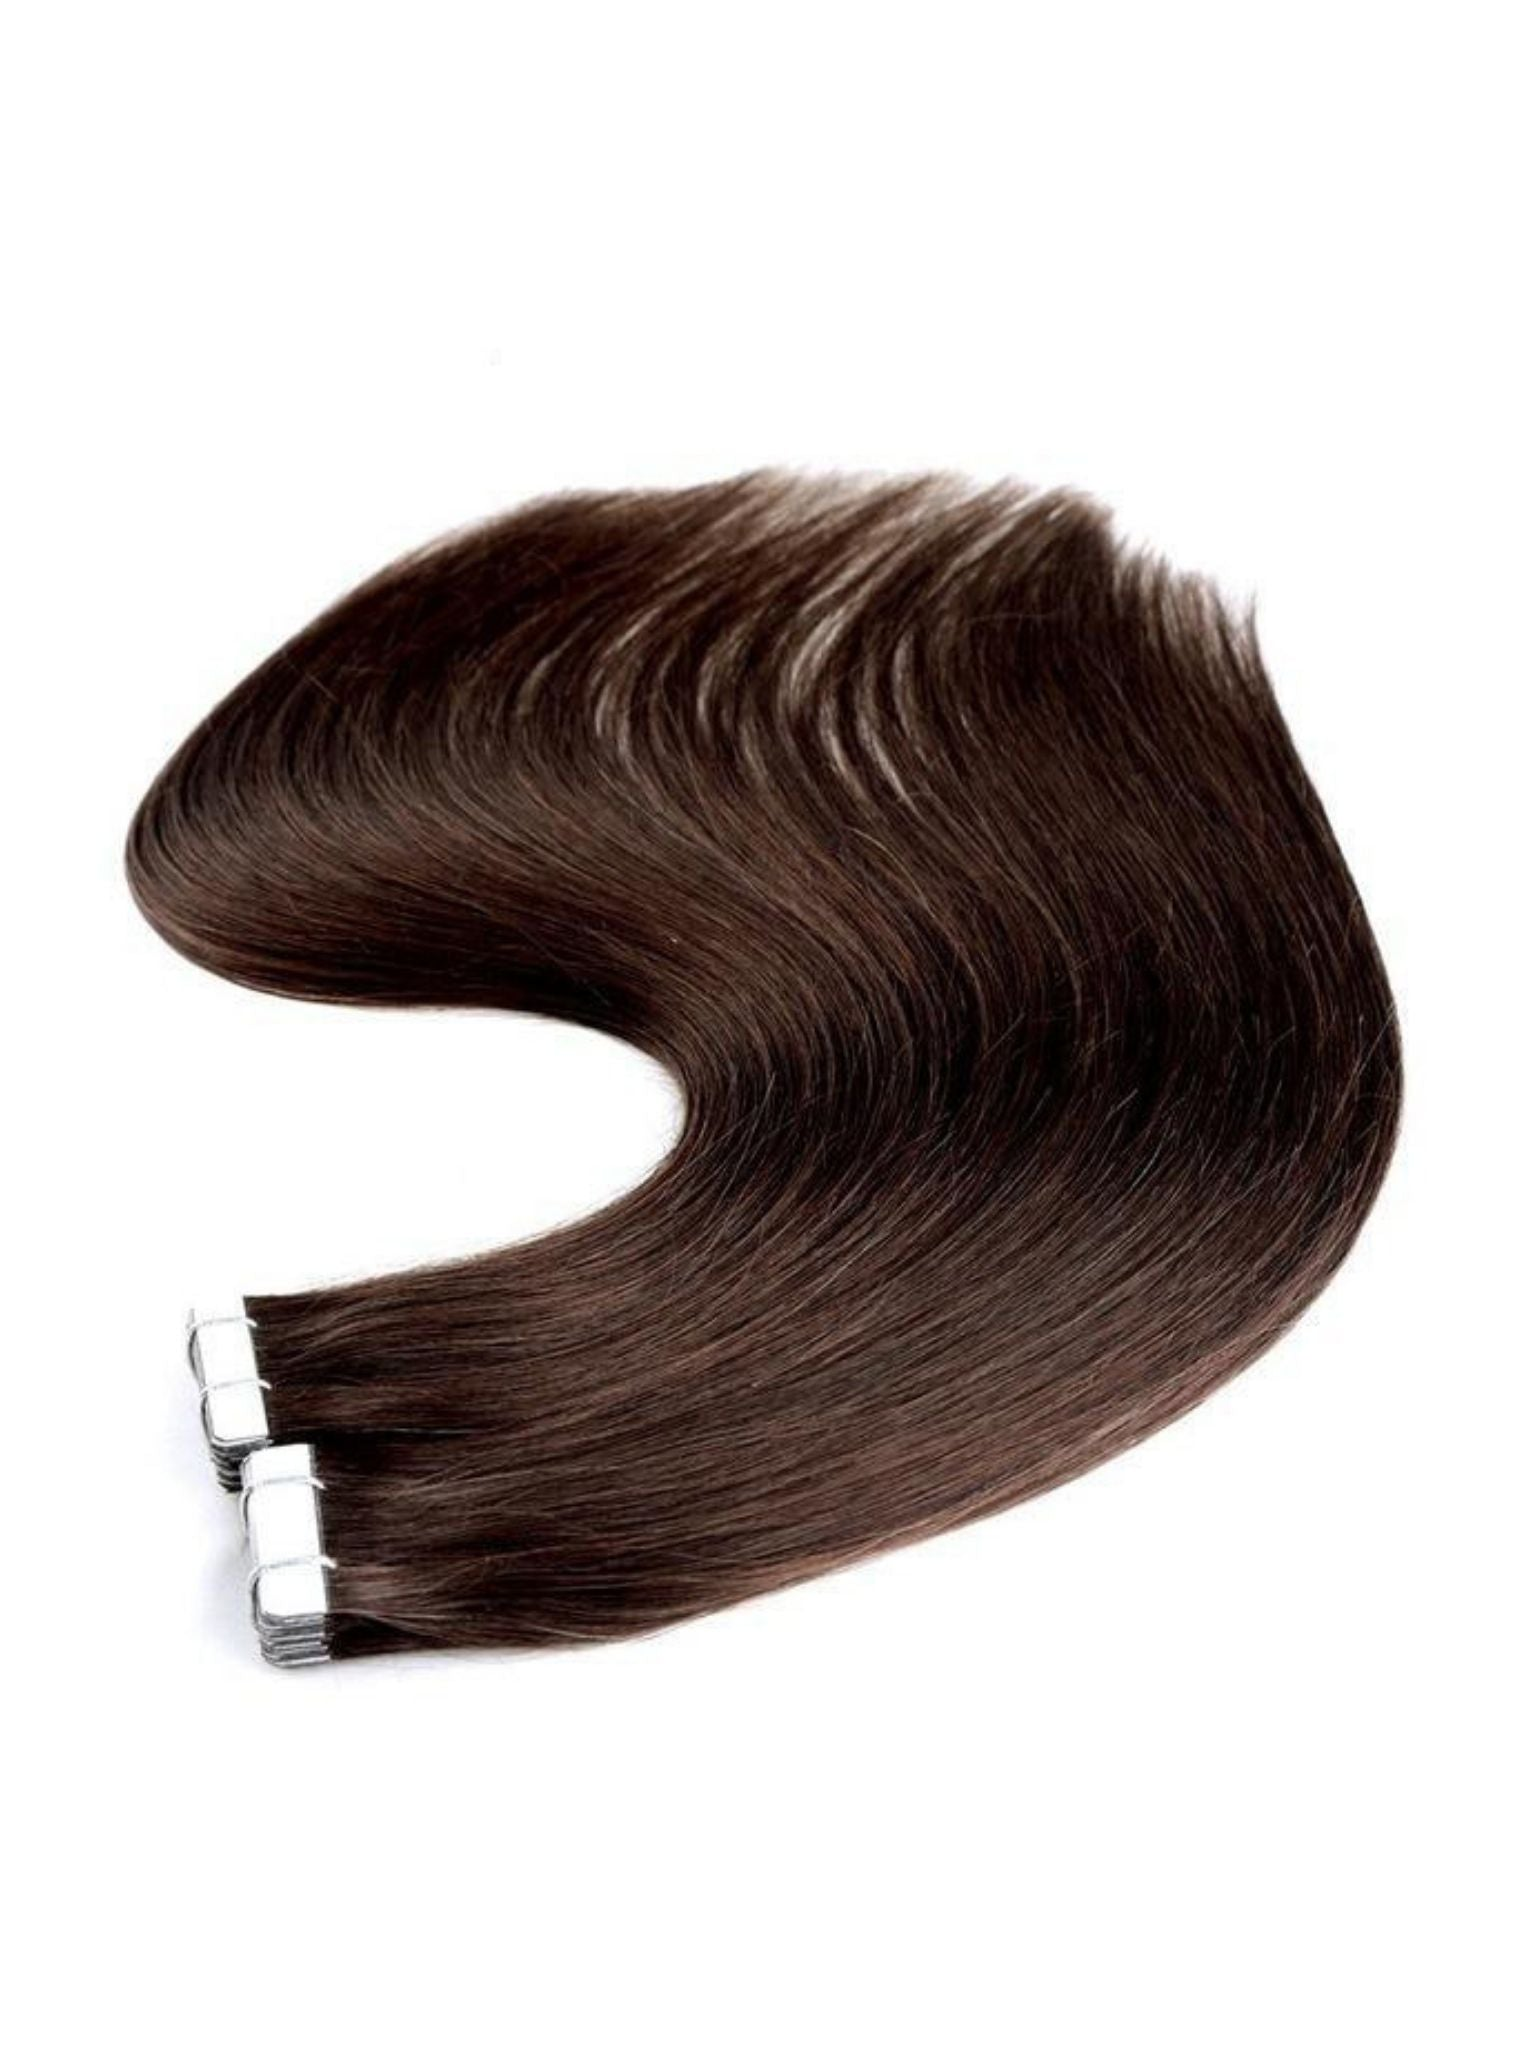 Seamless Tape-In Hair Extensions - Truffle Brown #4